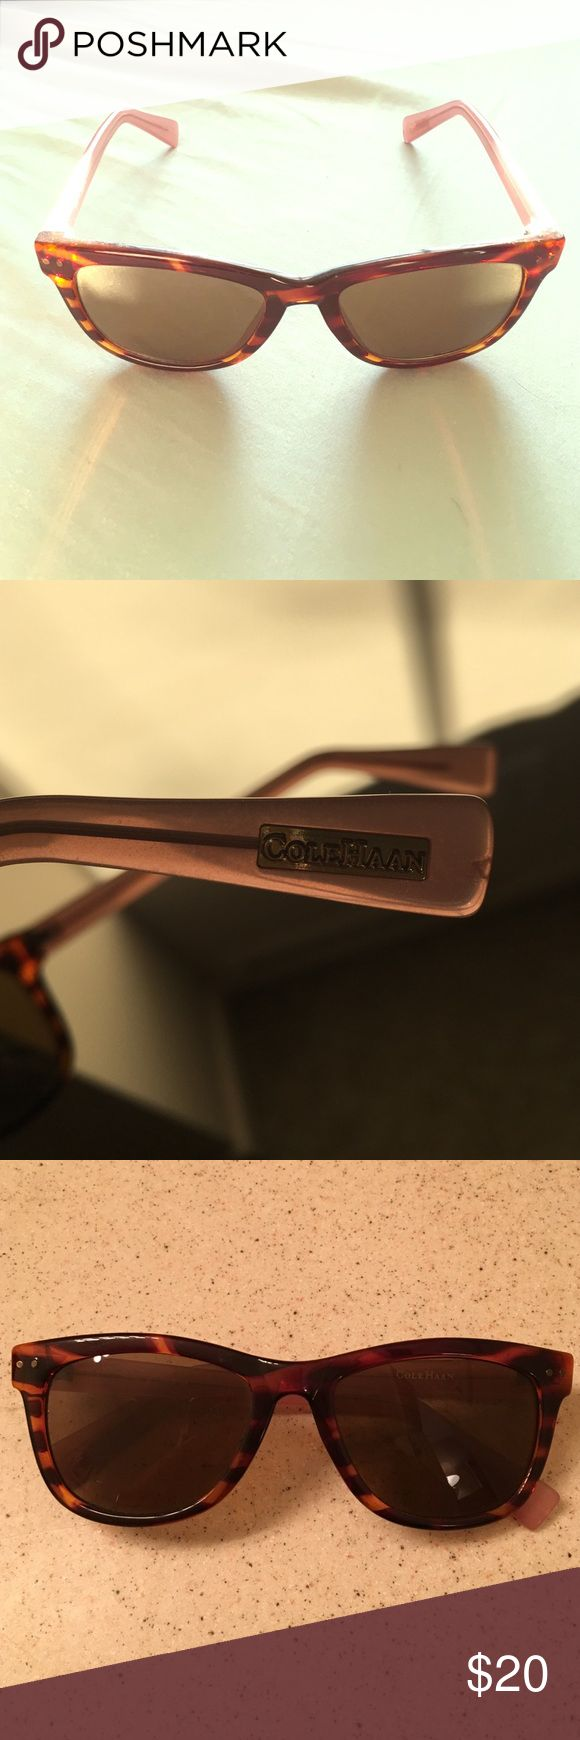 Cole Haan Women's Sunglasses (C6069 25) Honey tortoise and transparent pink rectangle sunglasses. Left lens has small scratch, but doesn't affect sight. Feel free to make me an offer! Cole Haan Accessories Sunglasses